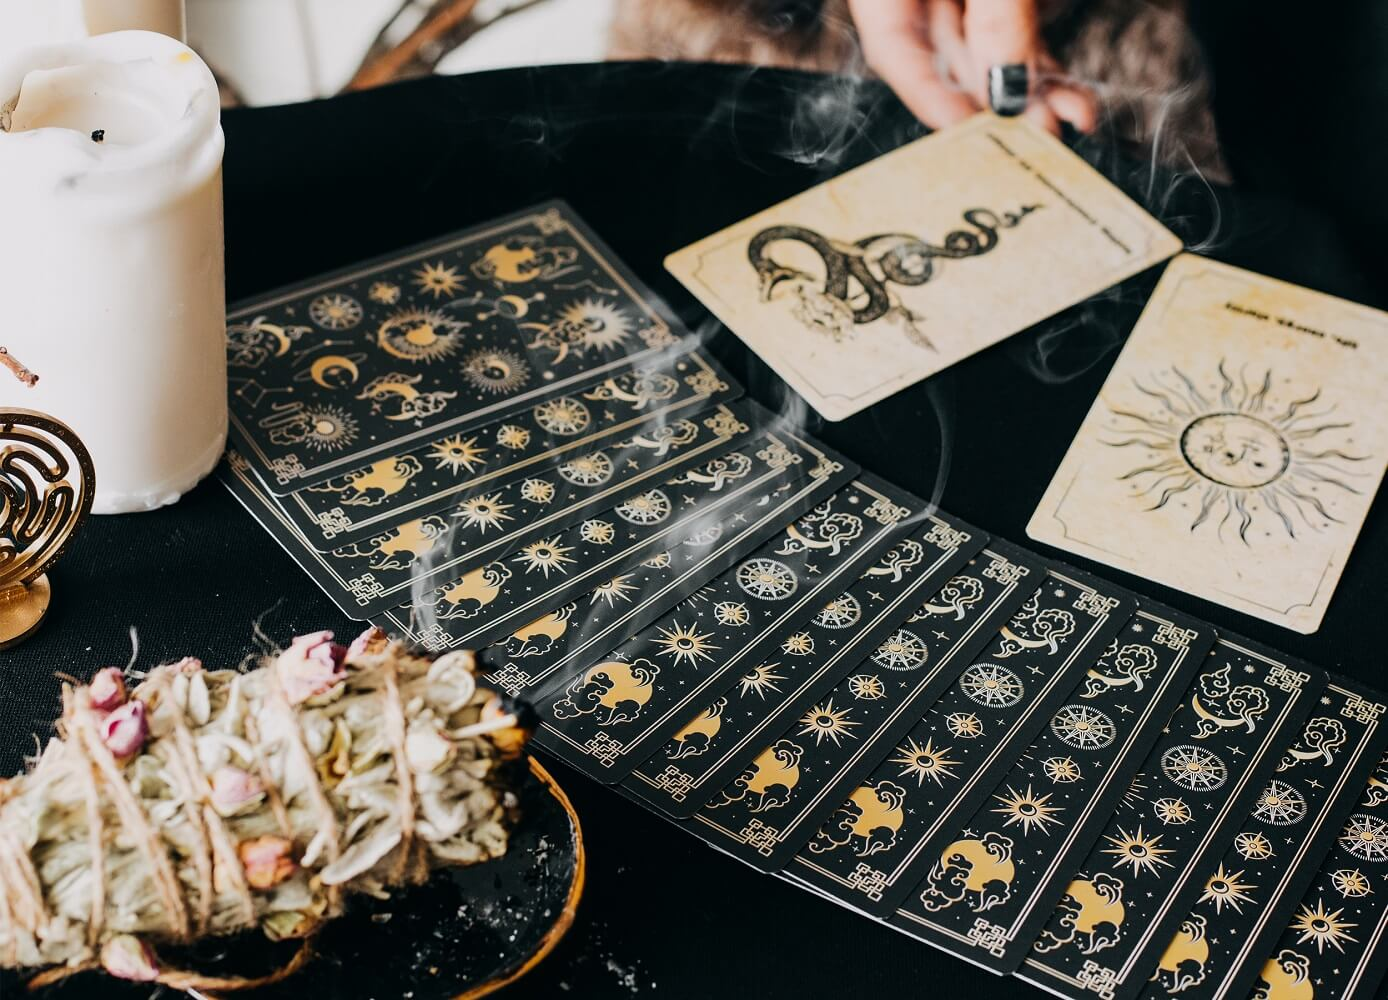 Oracle cards spread out on a table with a black cloth